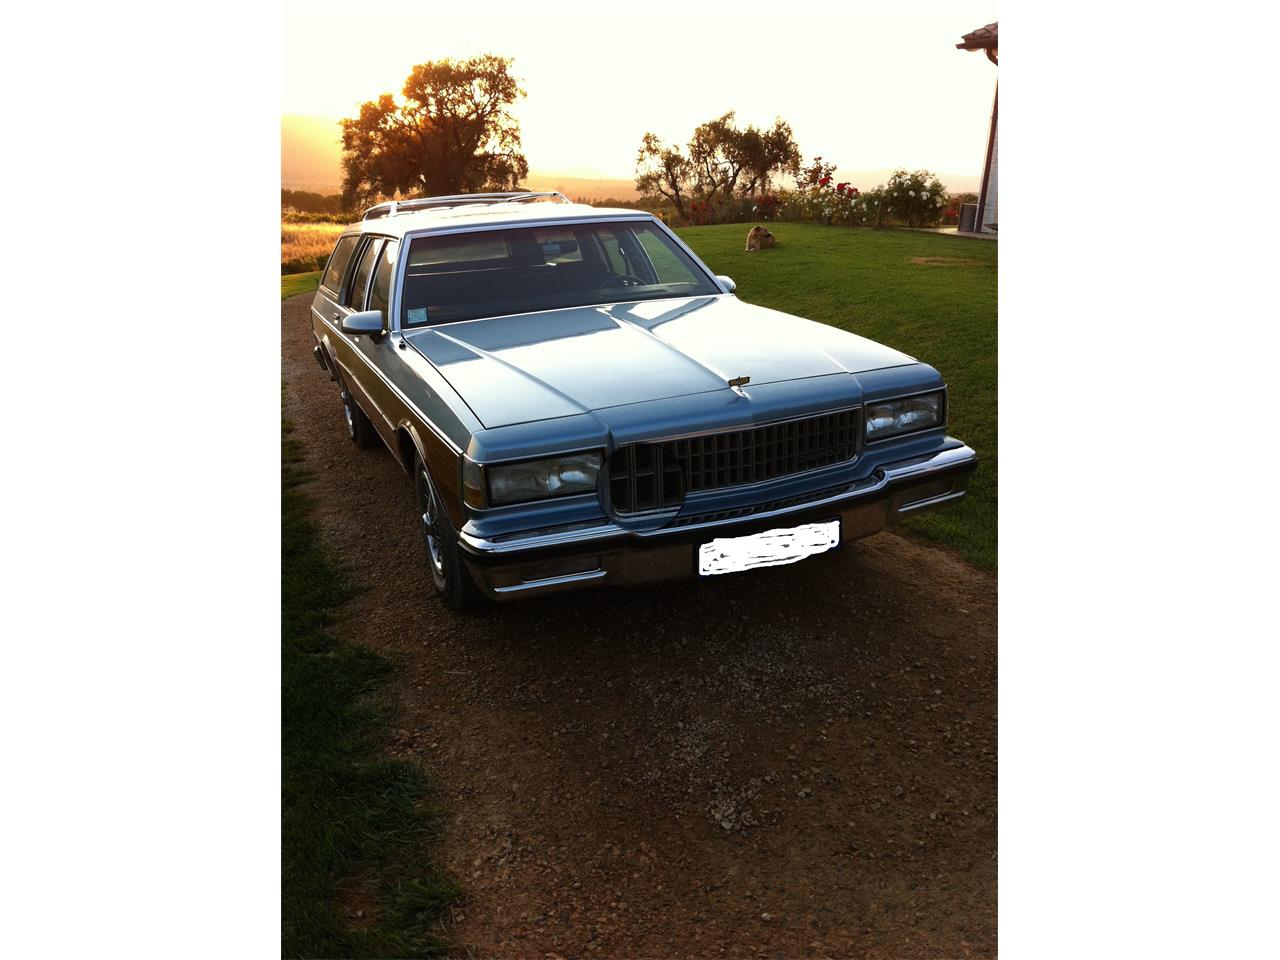 Large Picture of '87 Chevrolet Caprice located in Italy - $16,900.00 Offered by a Private Seller - JH35